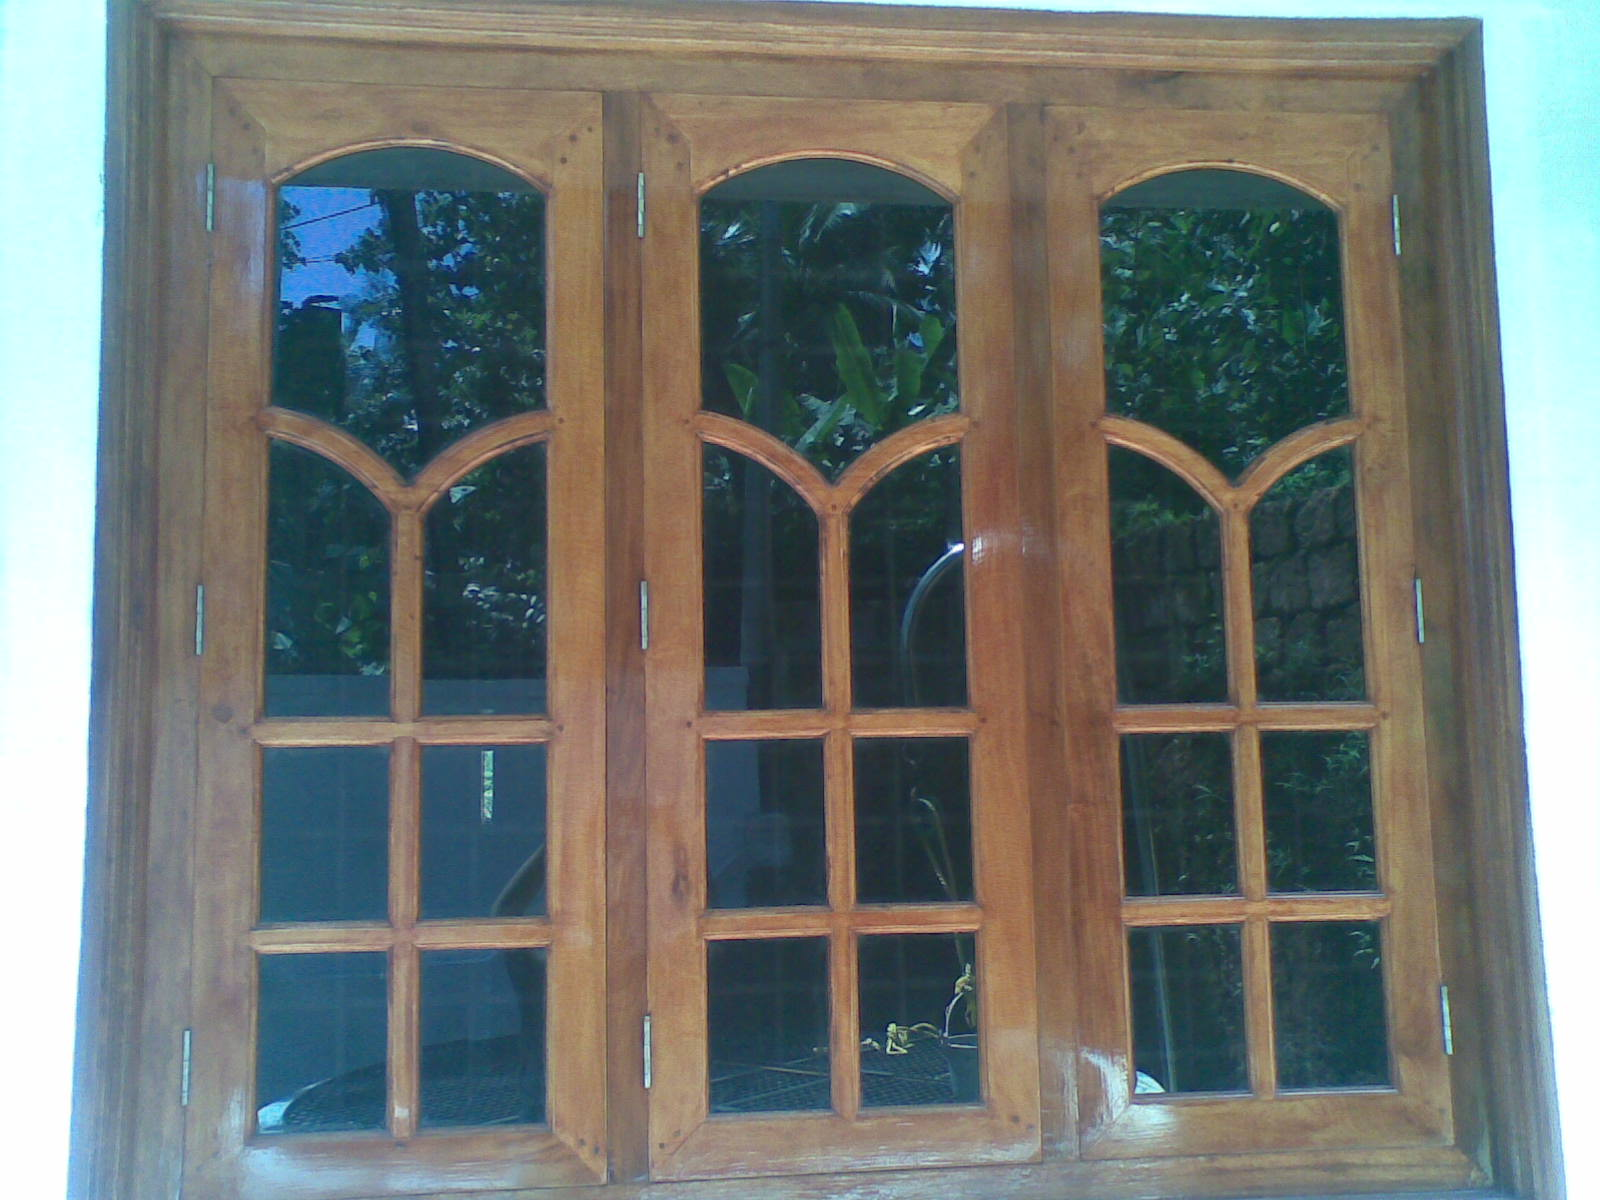 1200 #0EBDBD Wood Doors Wooden Windows Wood Windows Wooden Doors And Windows  Save Image Wood